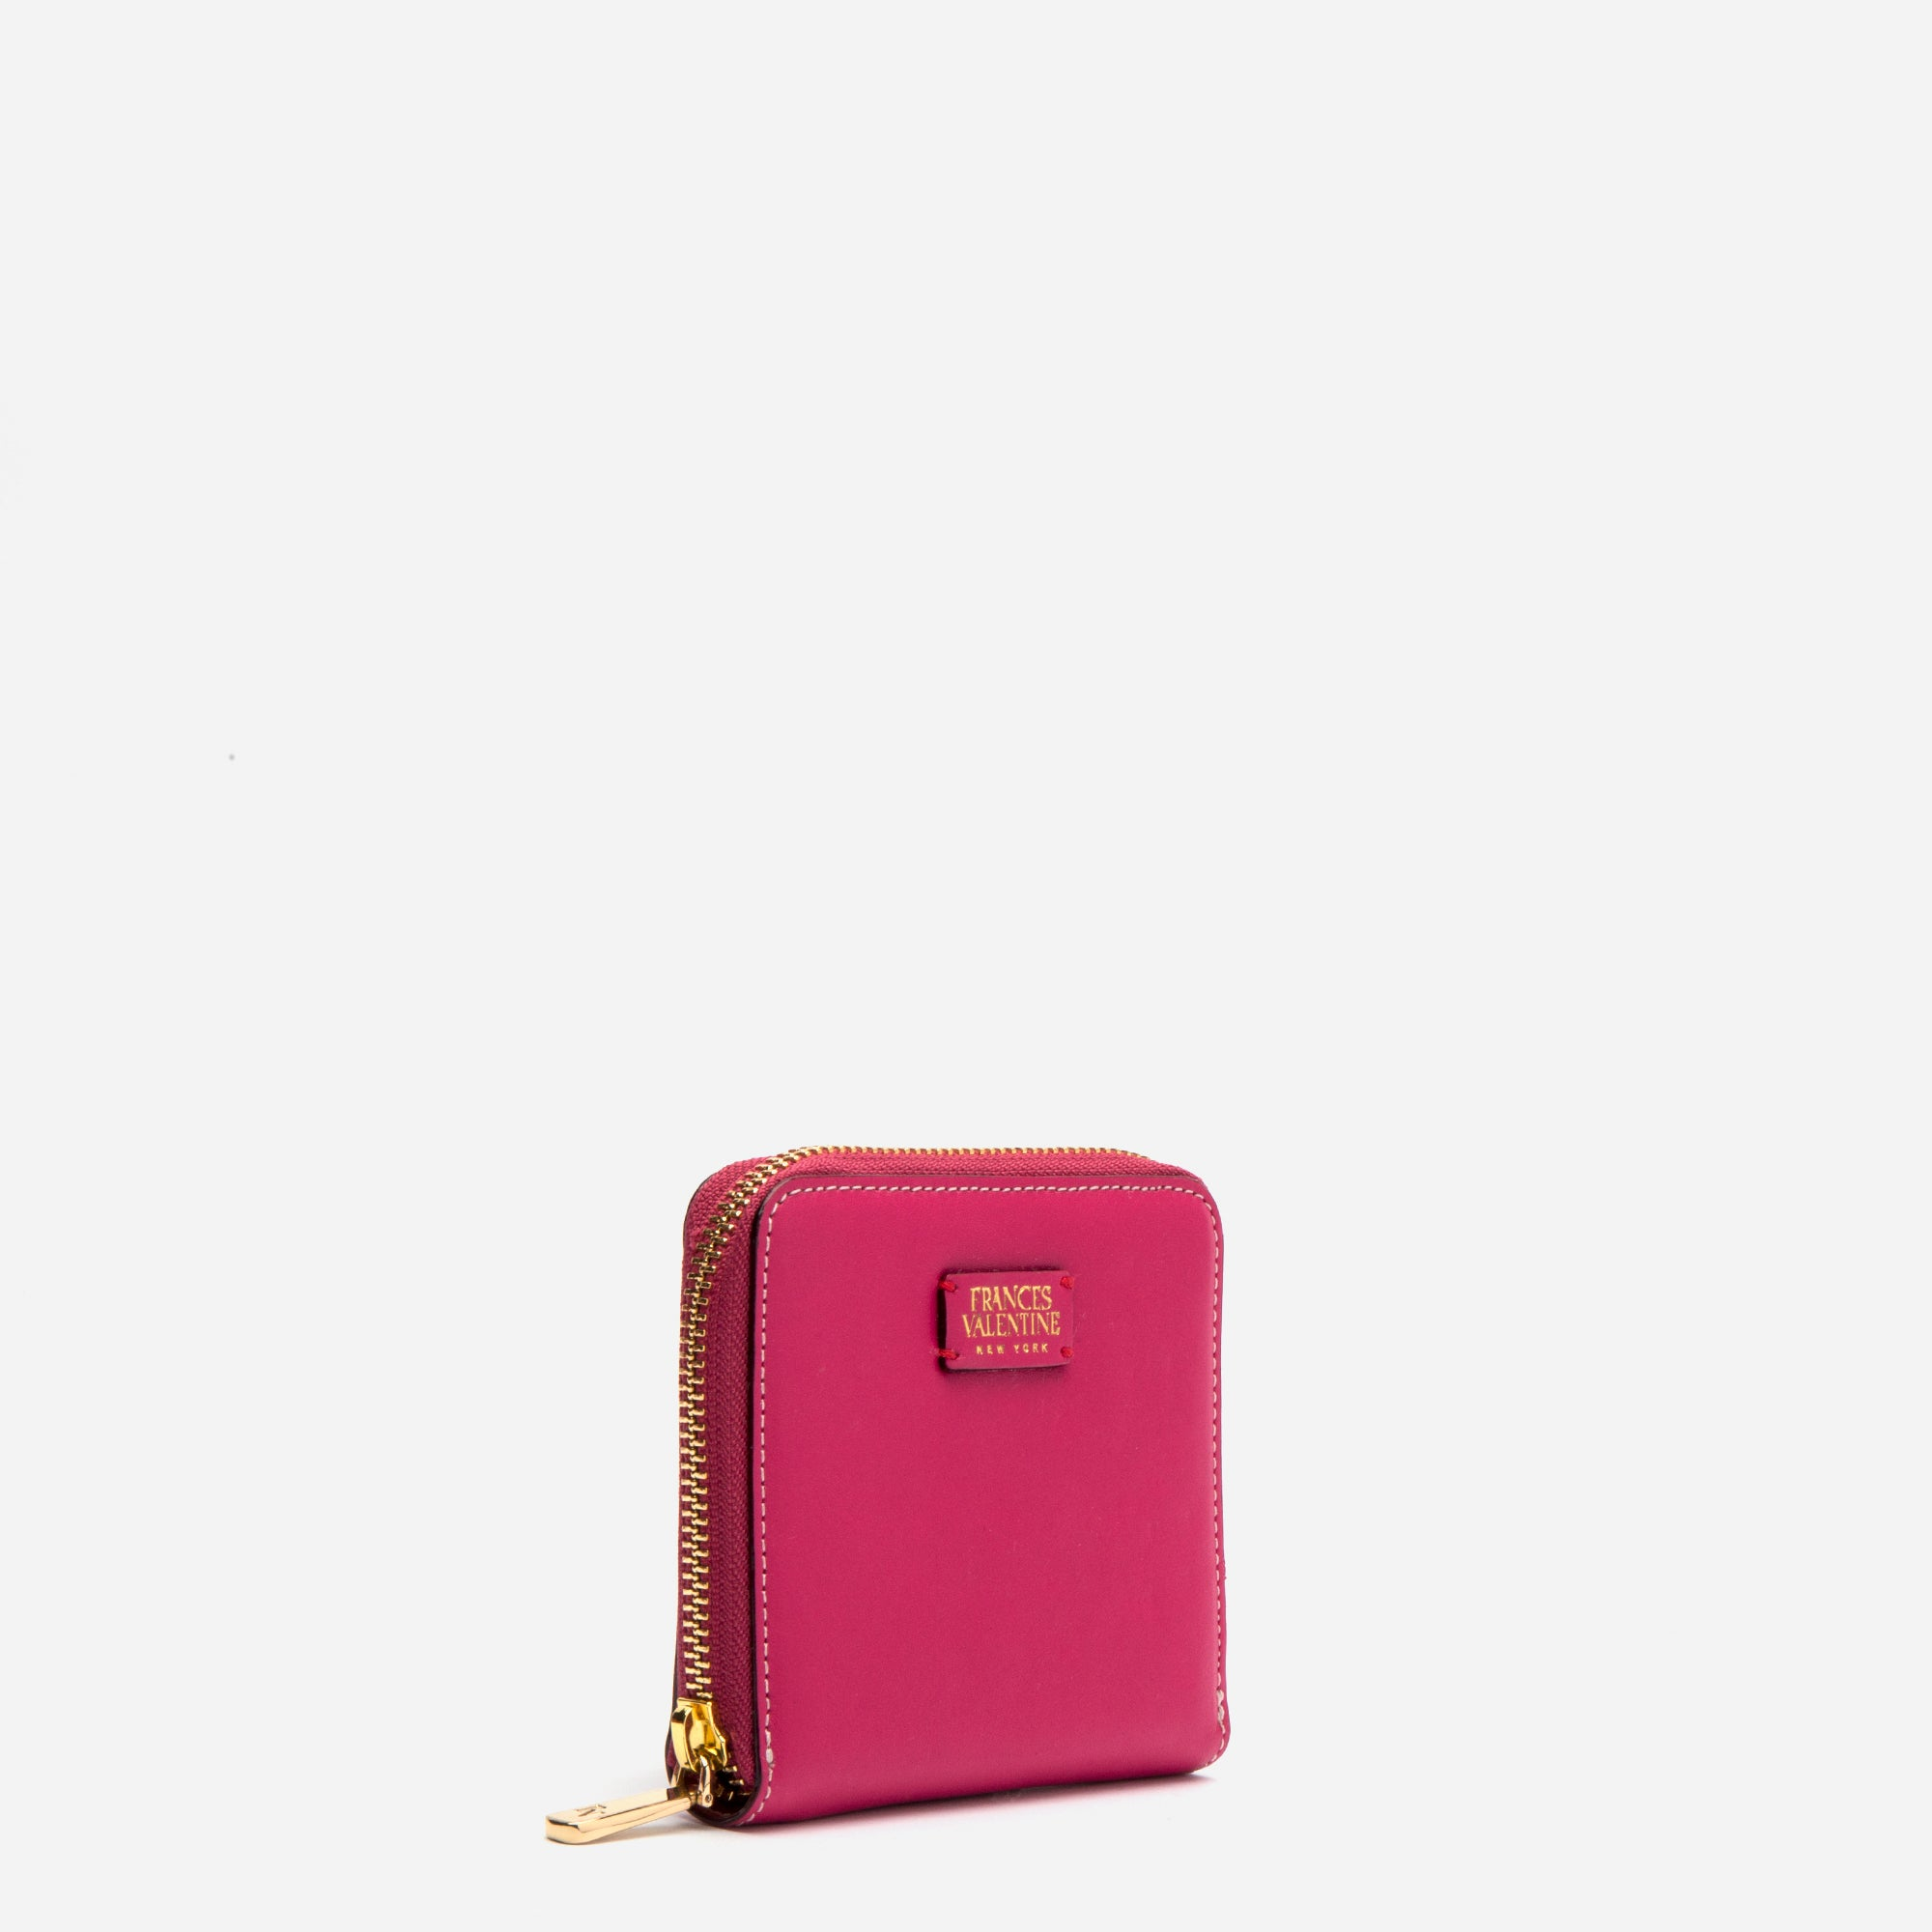 Roosevelt Small Zip Wallet Pink Red